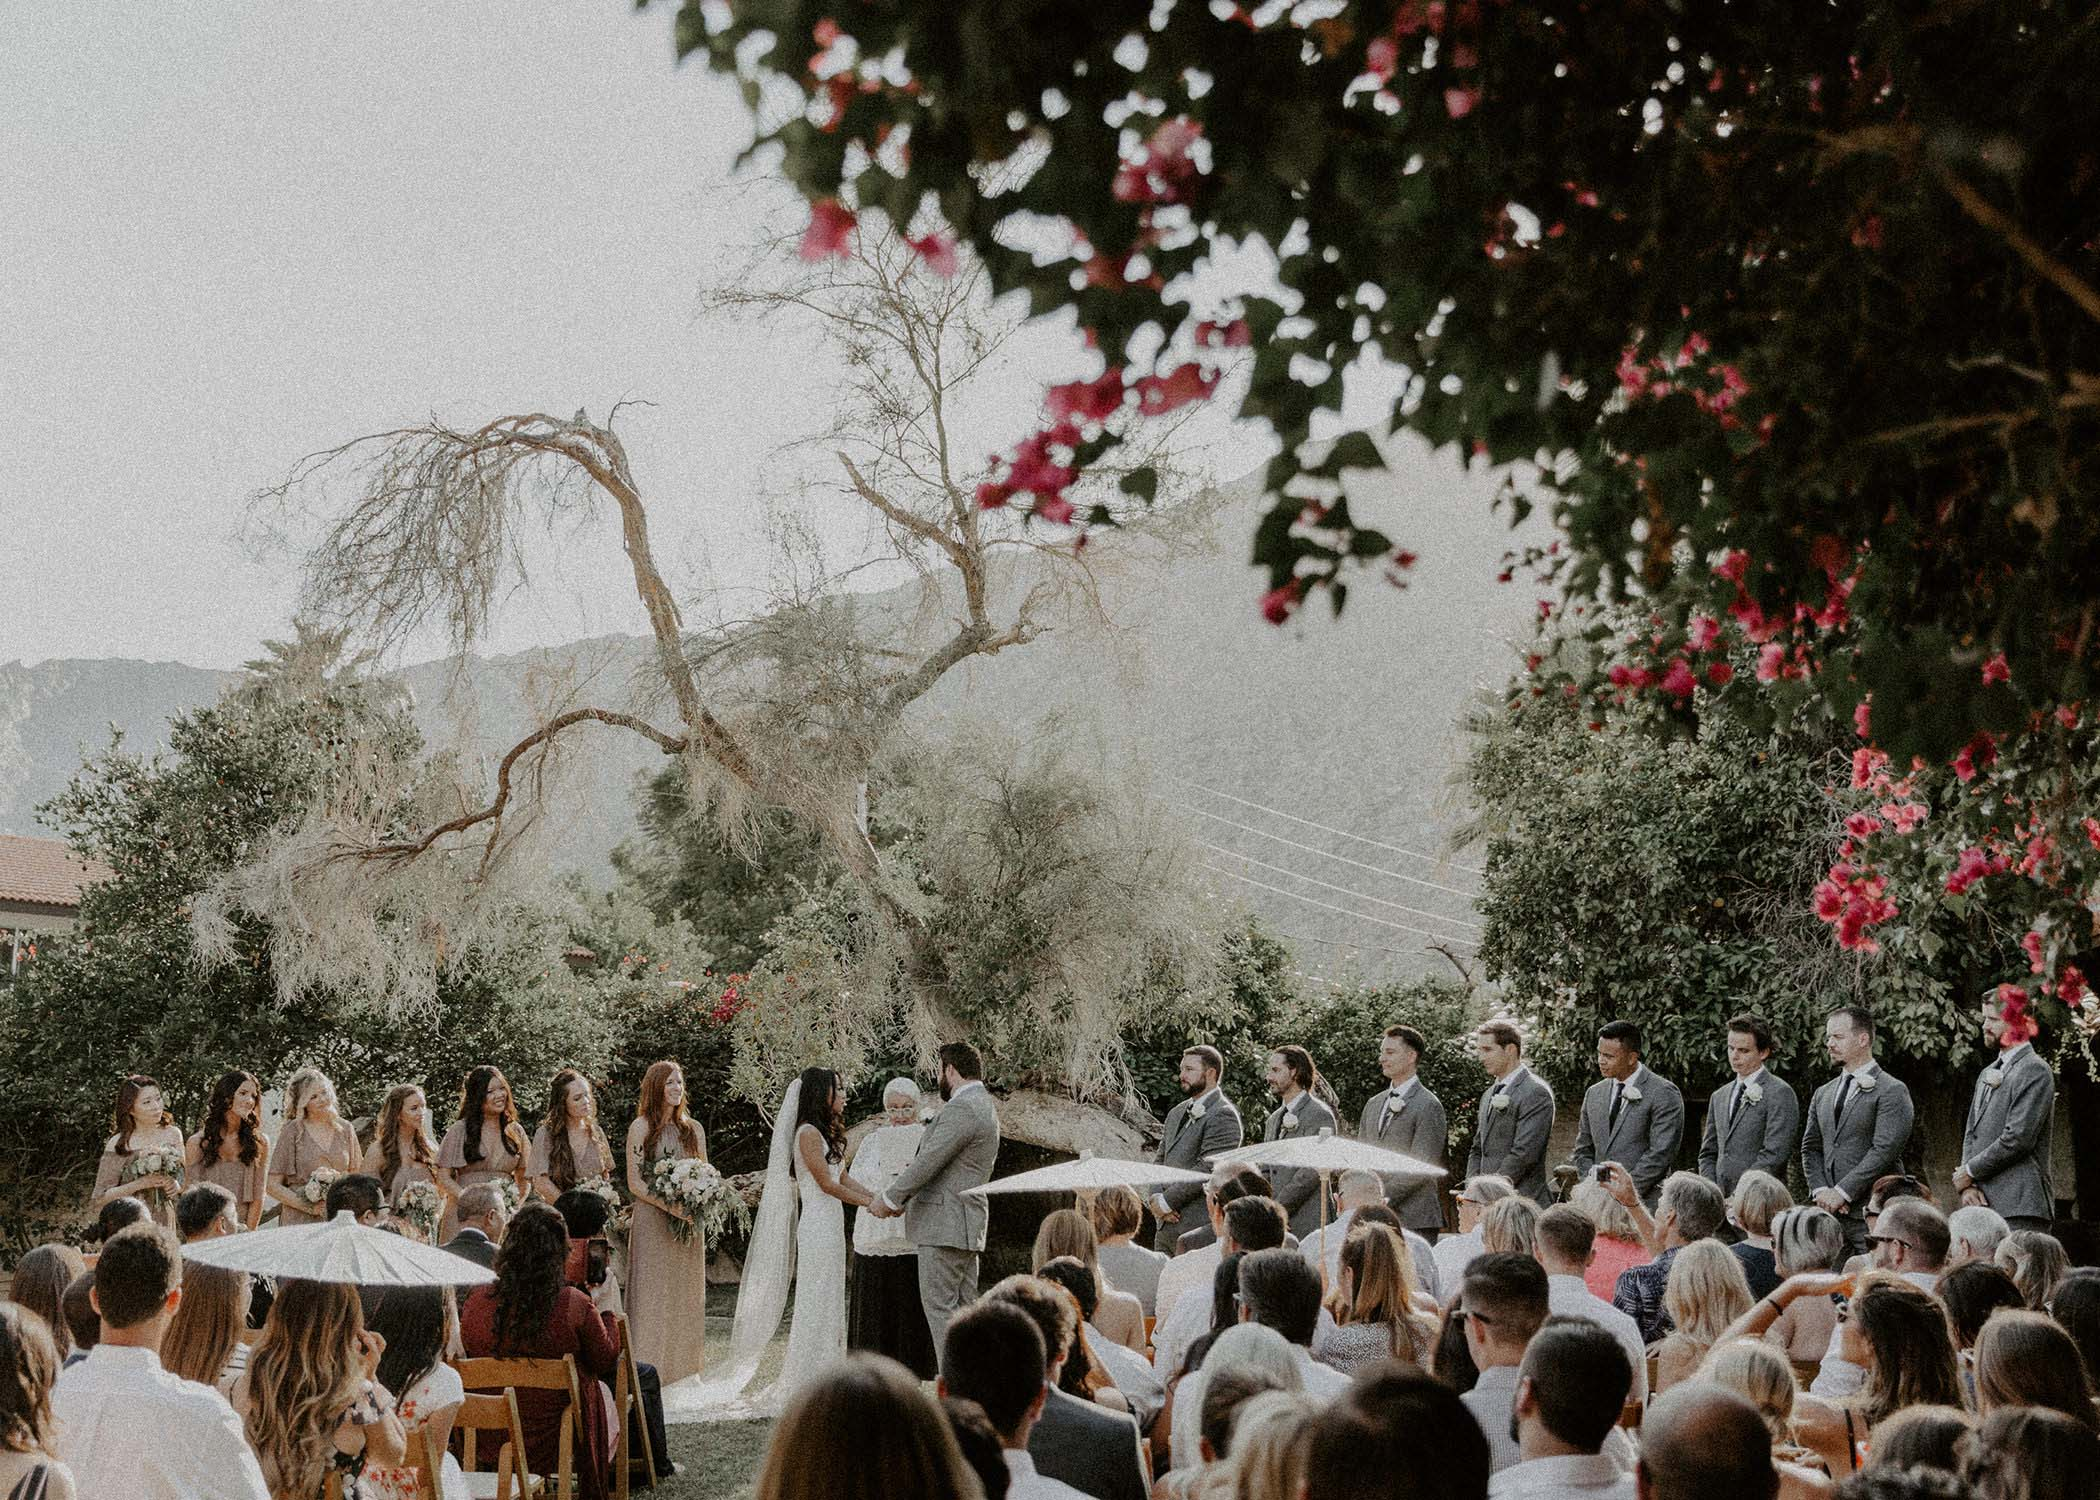 A big wedding event during ceremony time photographed in Palm Springs